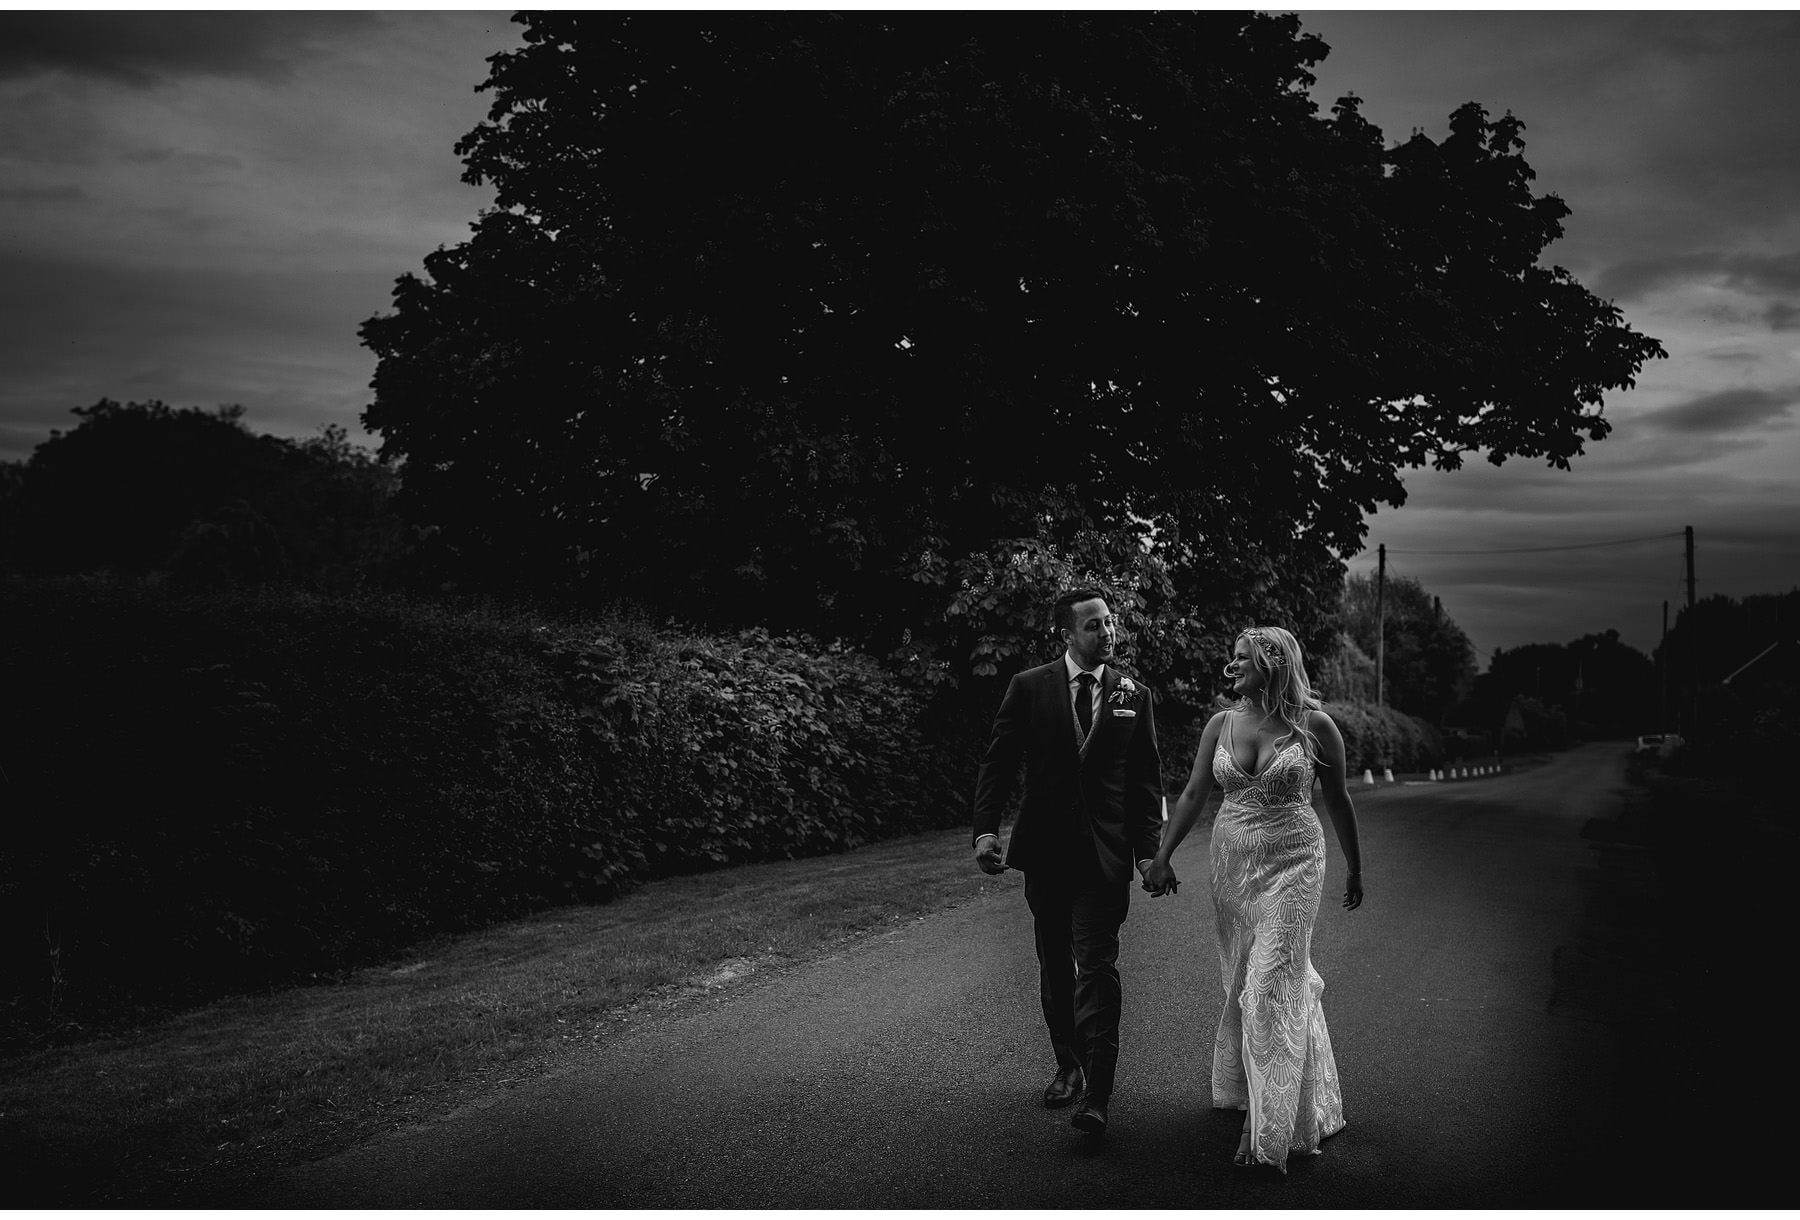 The bride & groom walking along the road